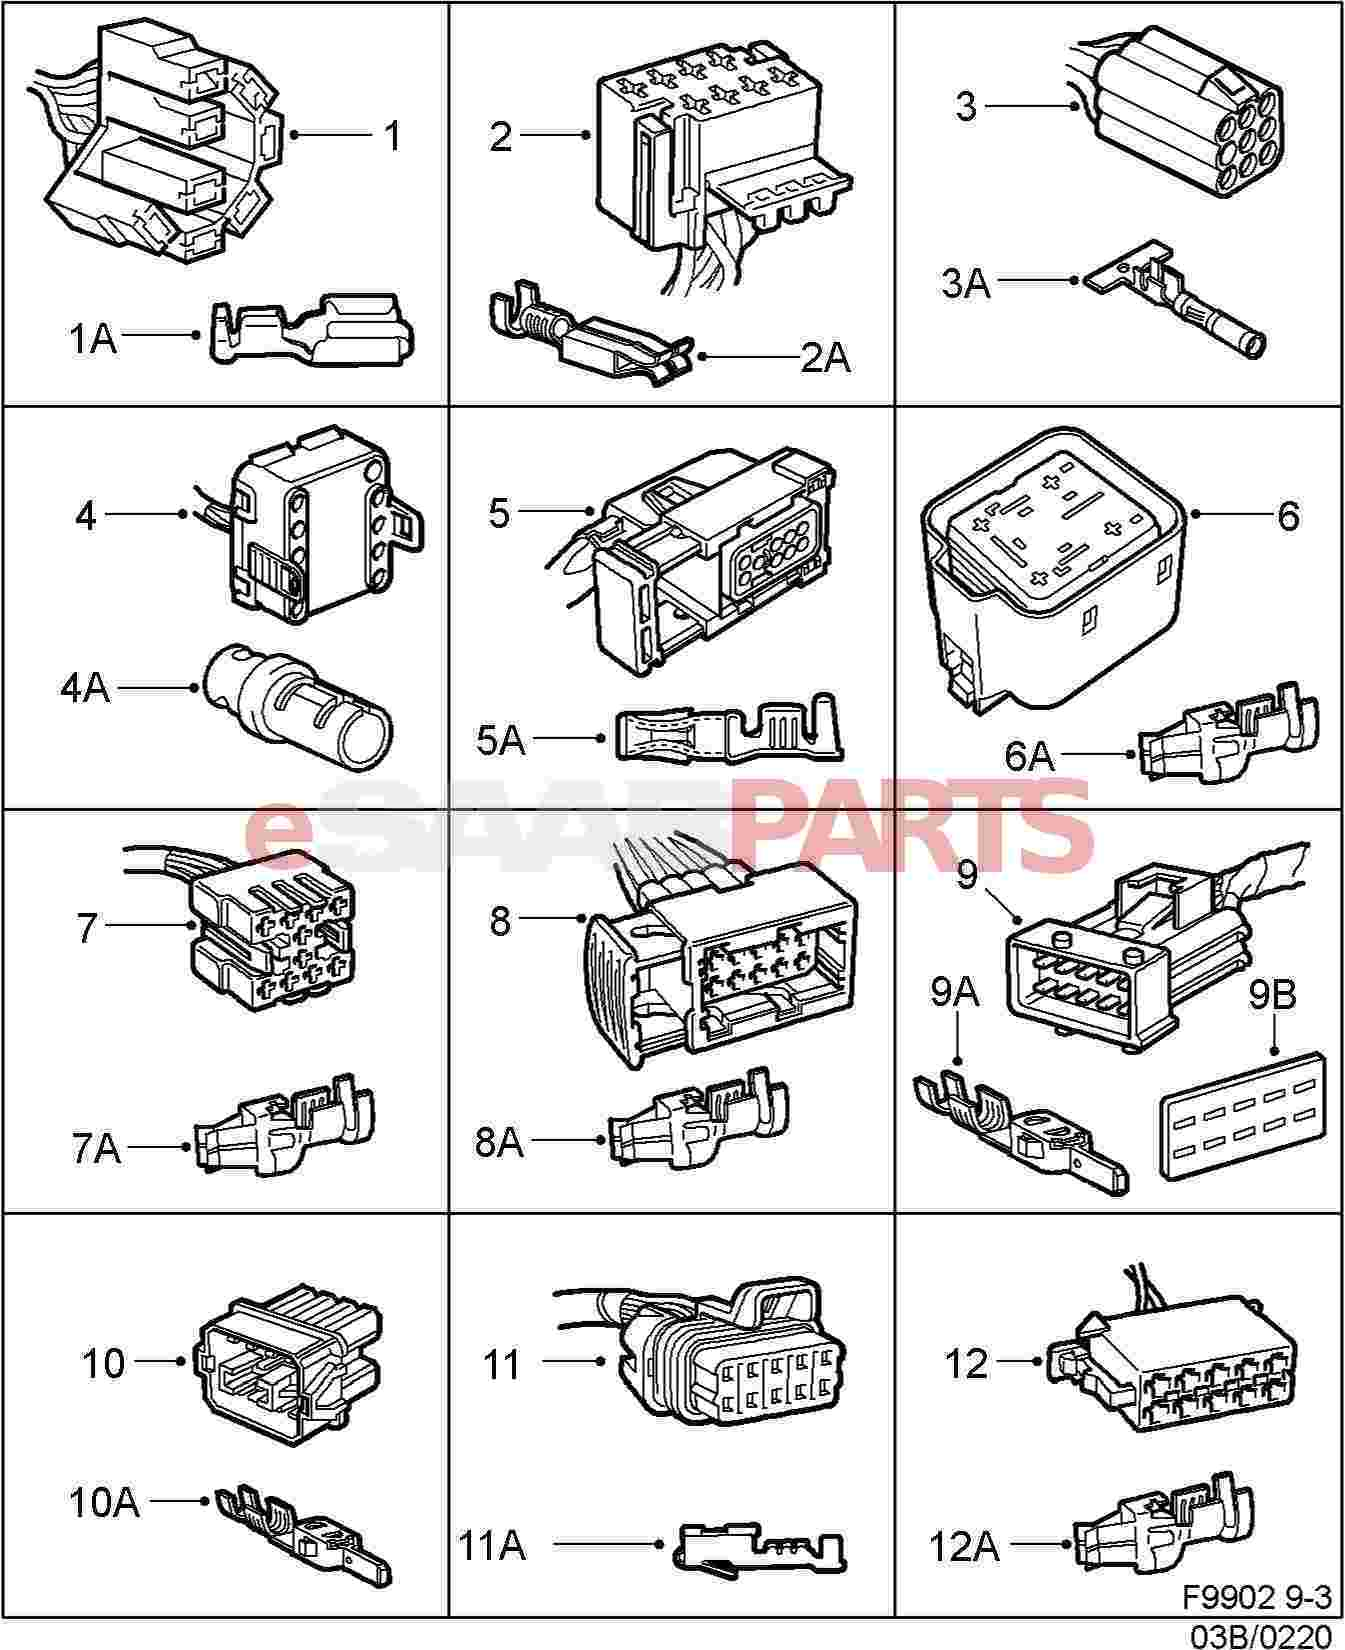 Automotive Electrical Connector Types likewise Can I Connect To My Cars Can Bus With An Elm327 Interface further Standard 7 Wire Trailer Wiring Diagram furthermore RV Help Publications And Links furthermore Head Light Relay Mod Write Up Wow What Difference 1399040. on gm 7 pin trailer wiring diagram